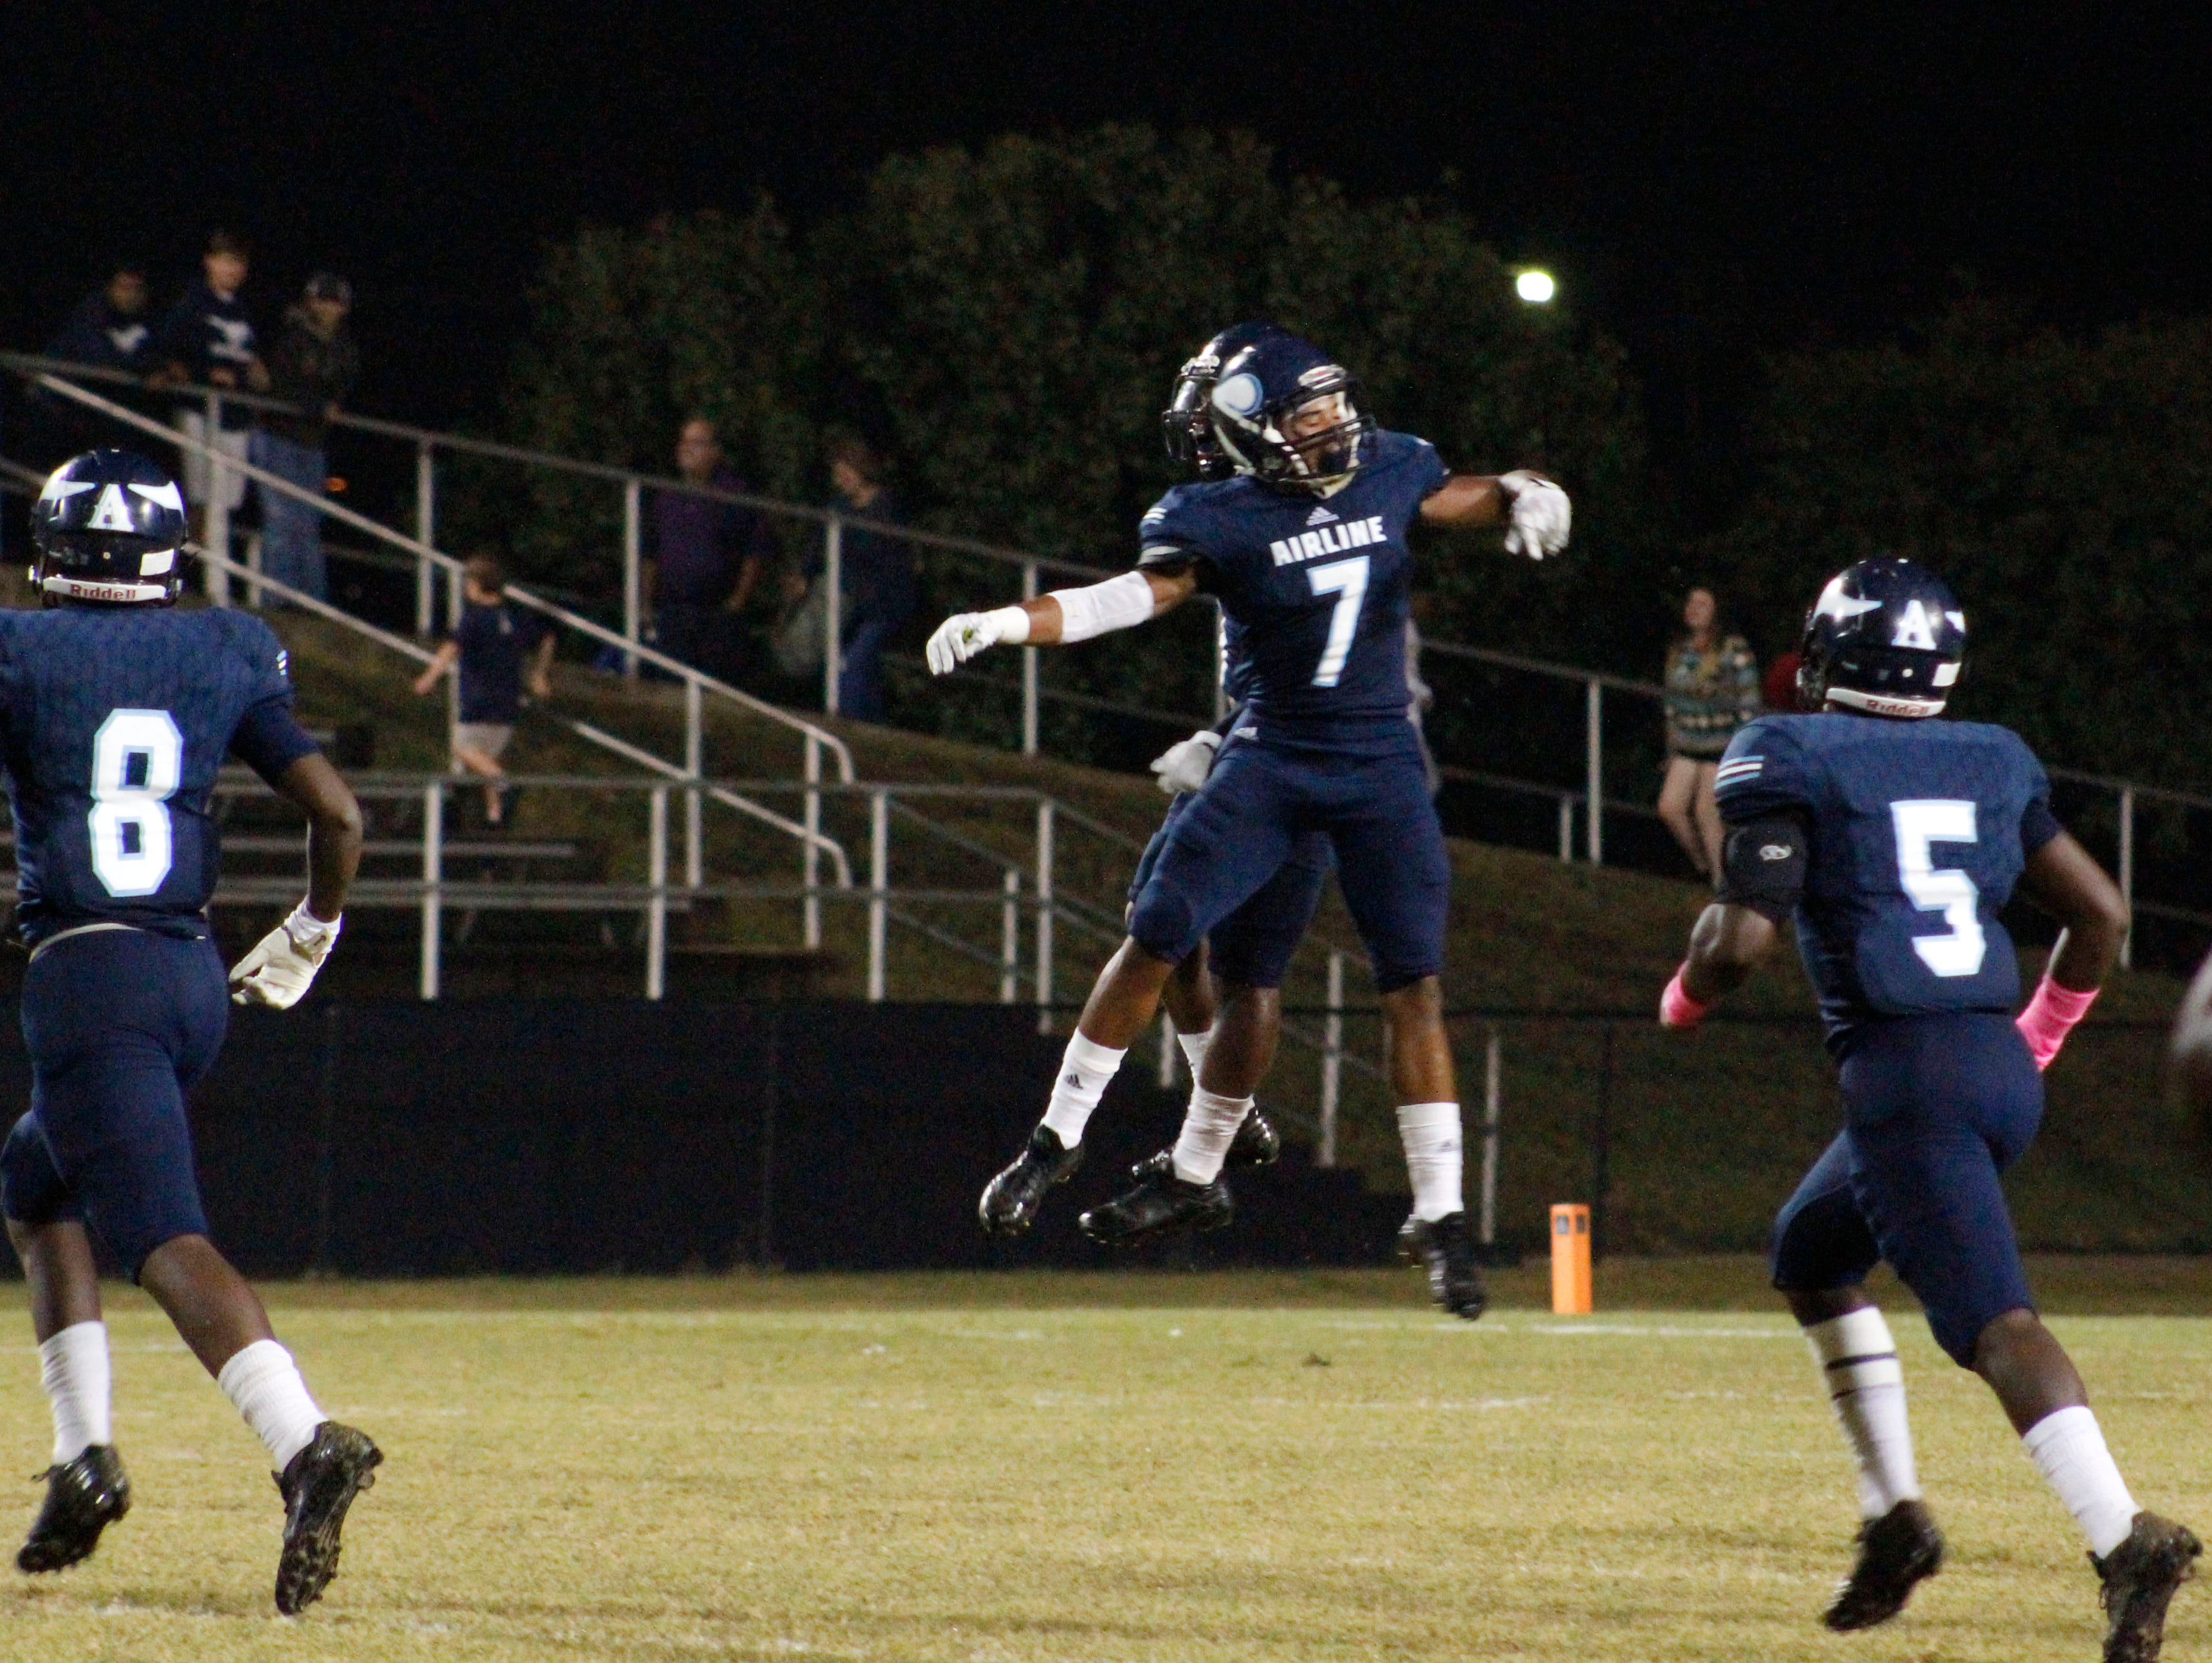 The Airline High School Vikings jump to celebrate after scoring a touchdown against the Haughton High School Buccaneers on Friday night in Bossier City.